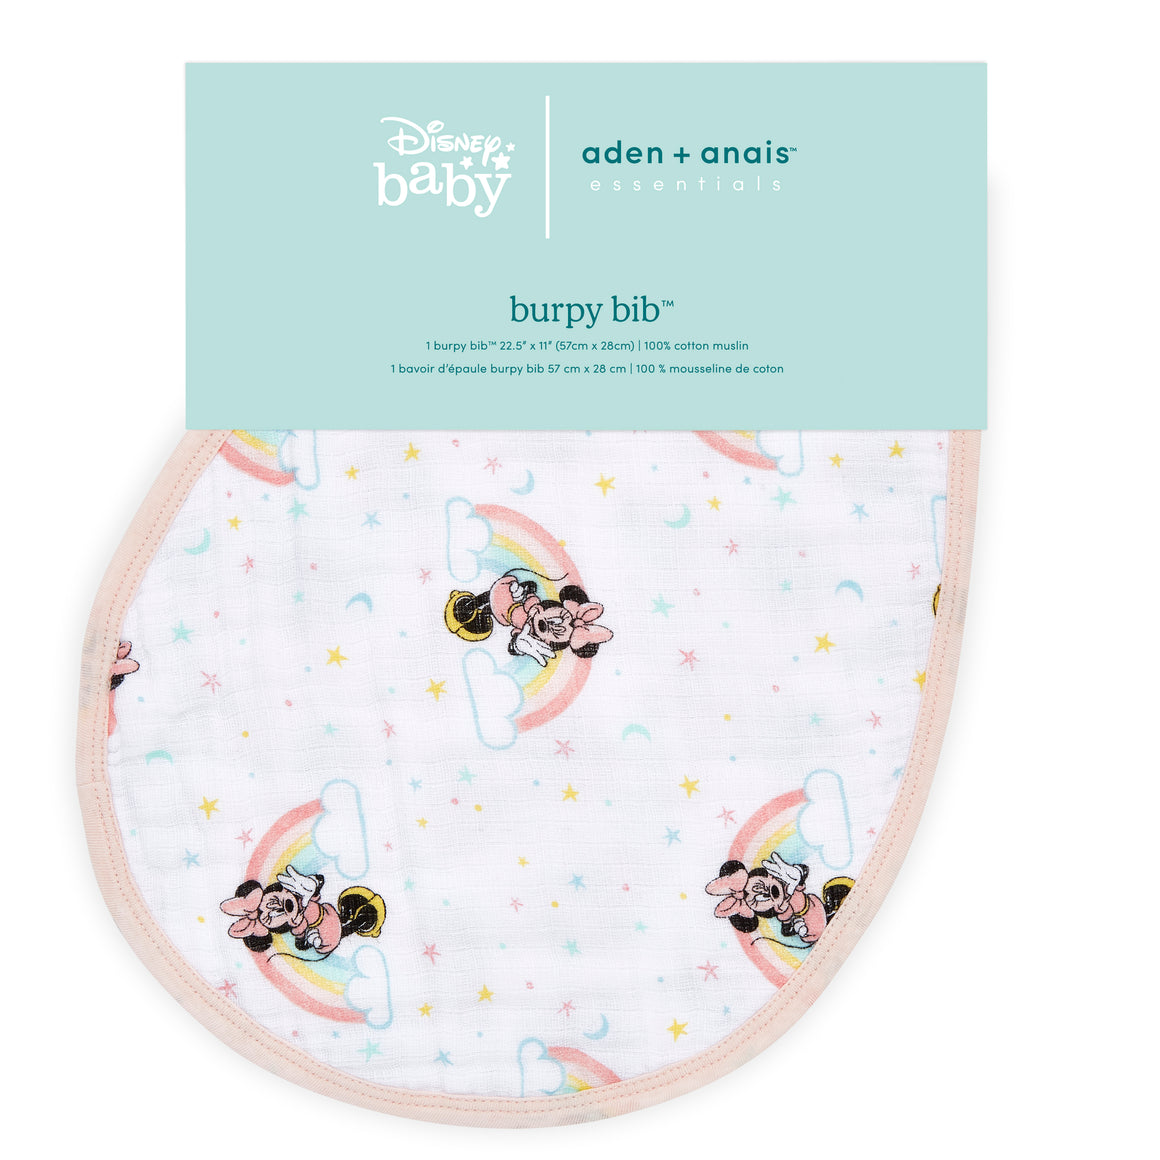 aden + anais essentials DISNEY Minnie single burpy bib